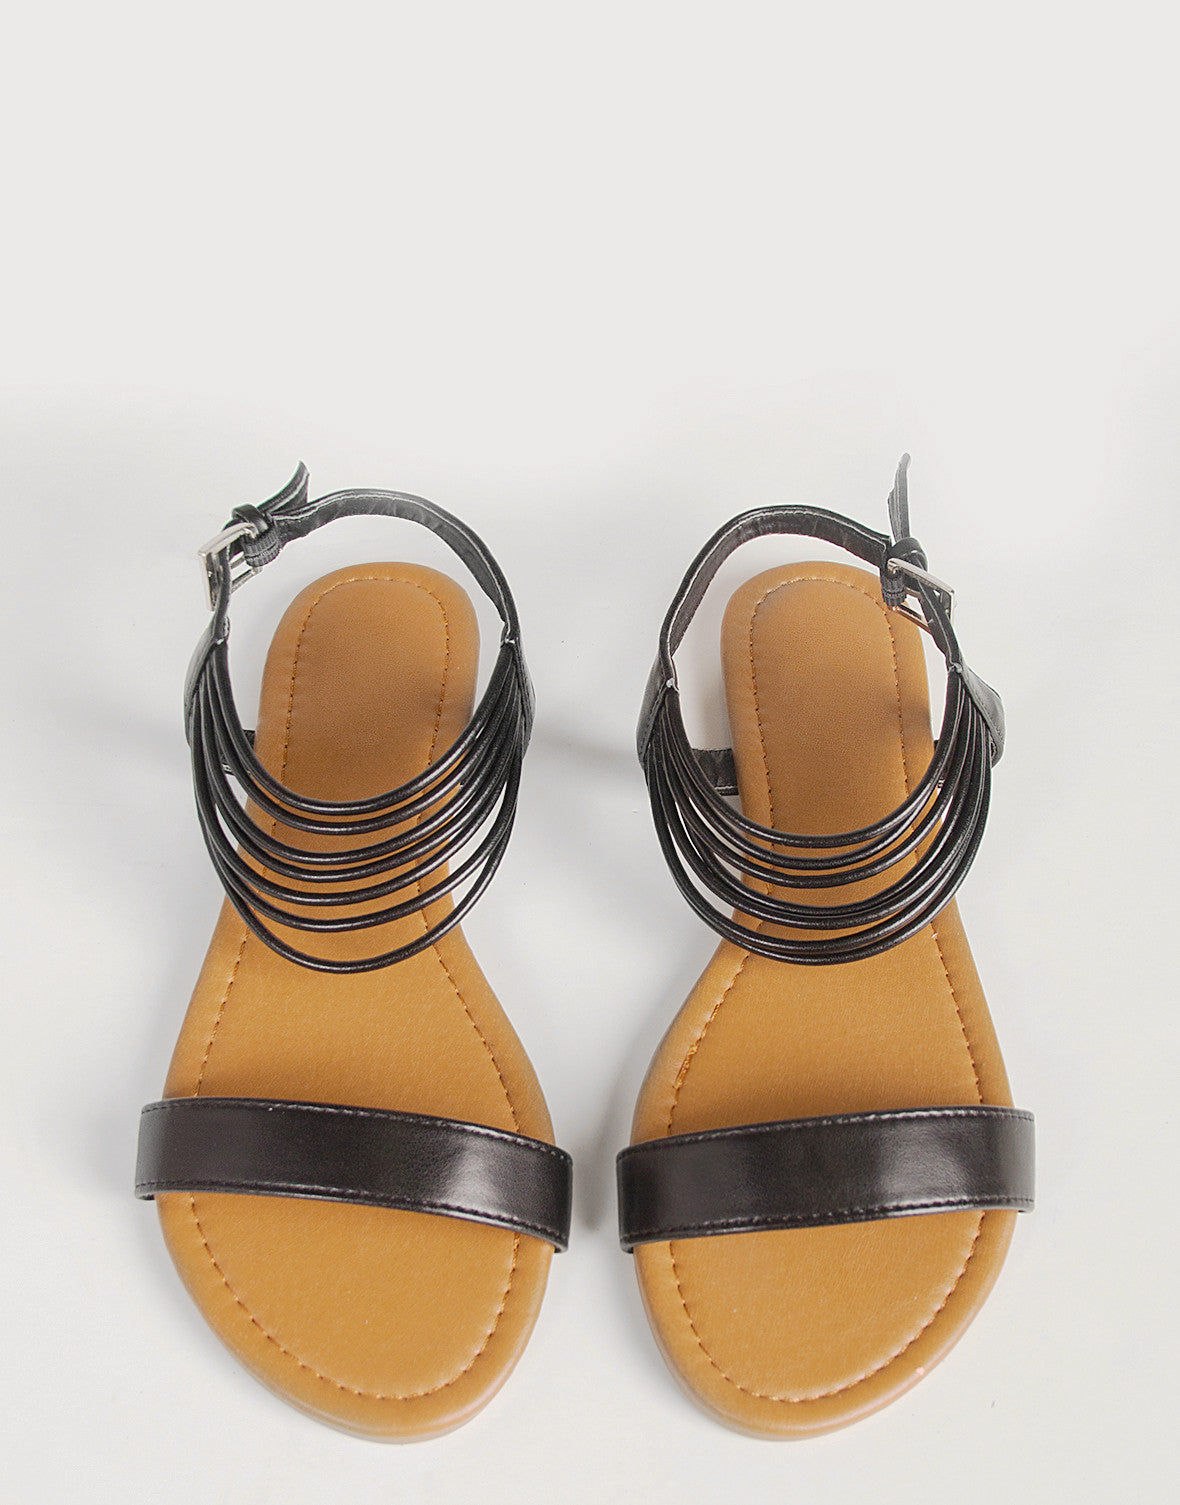 Ankle Strappy Sling Back Sandals - Black